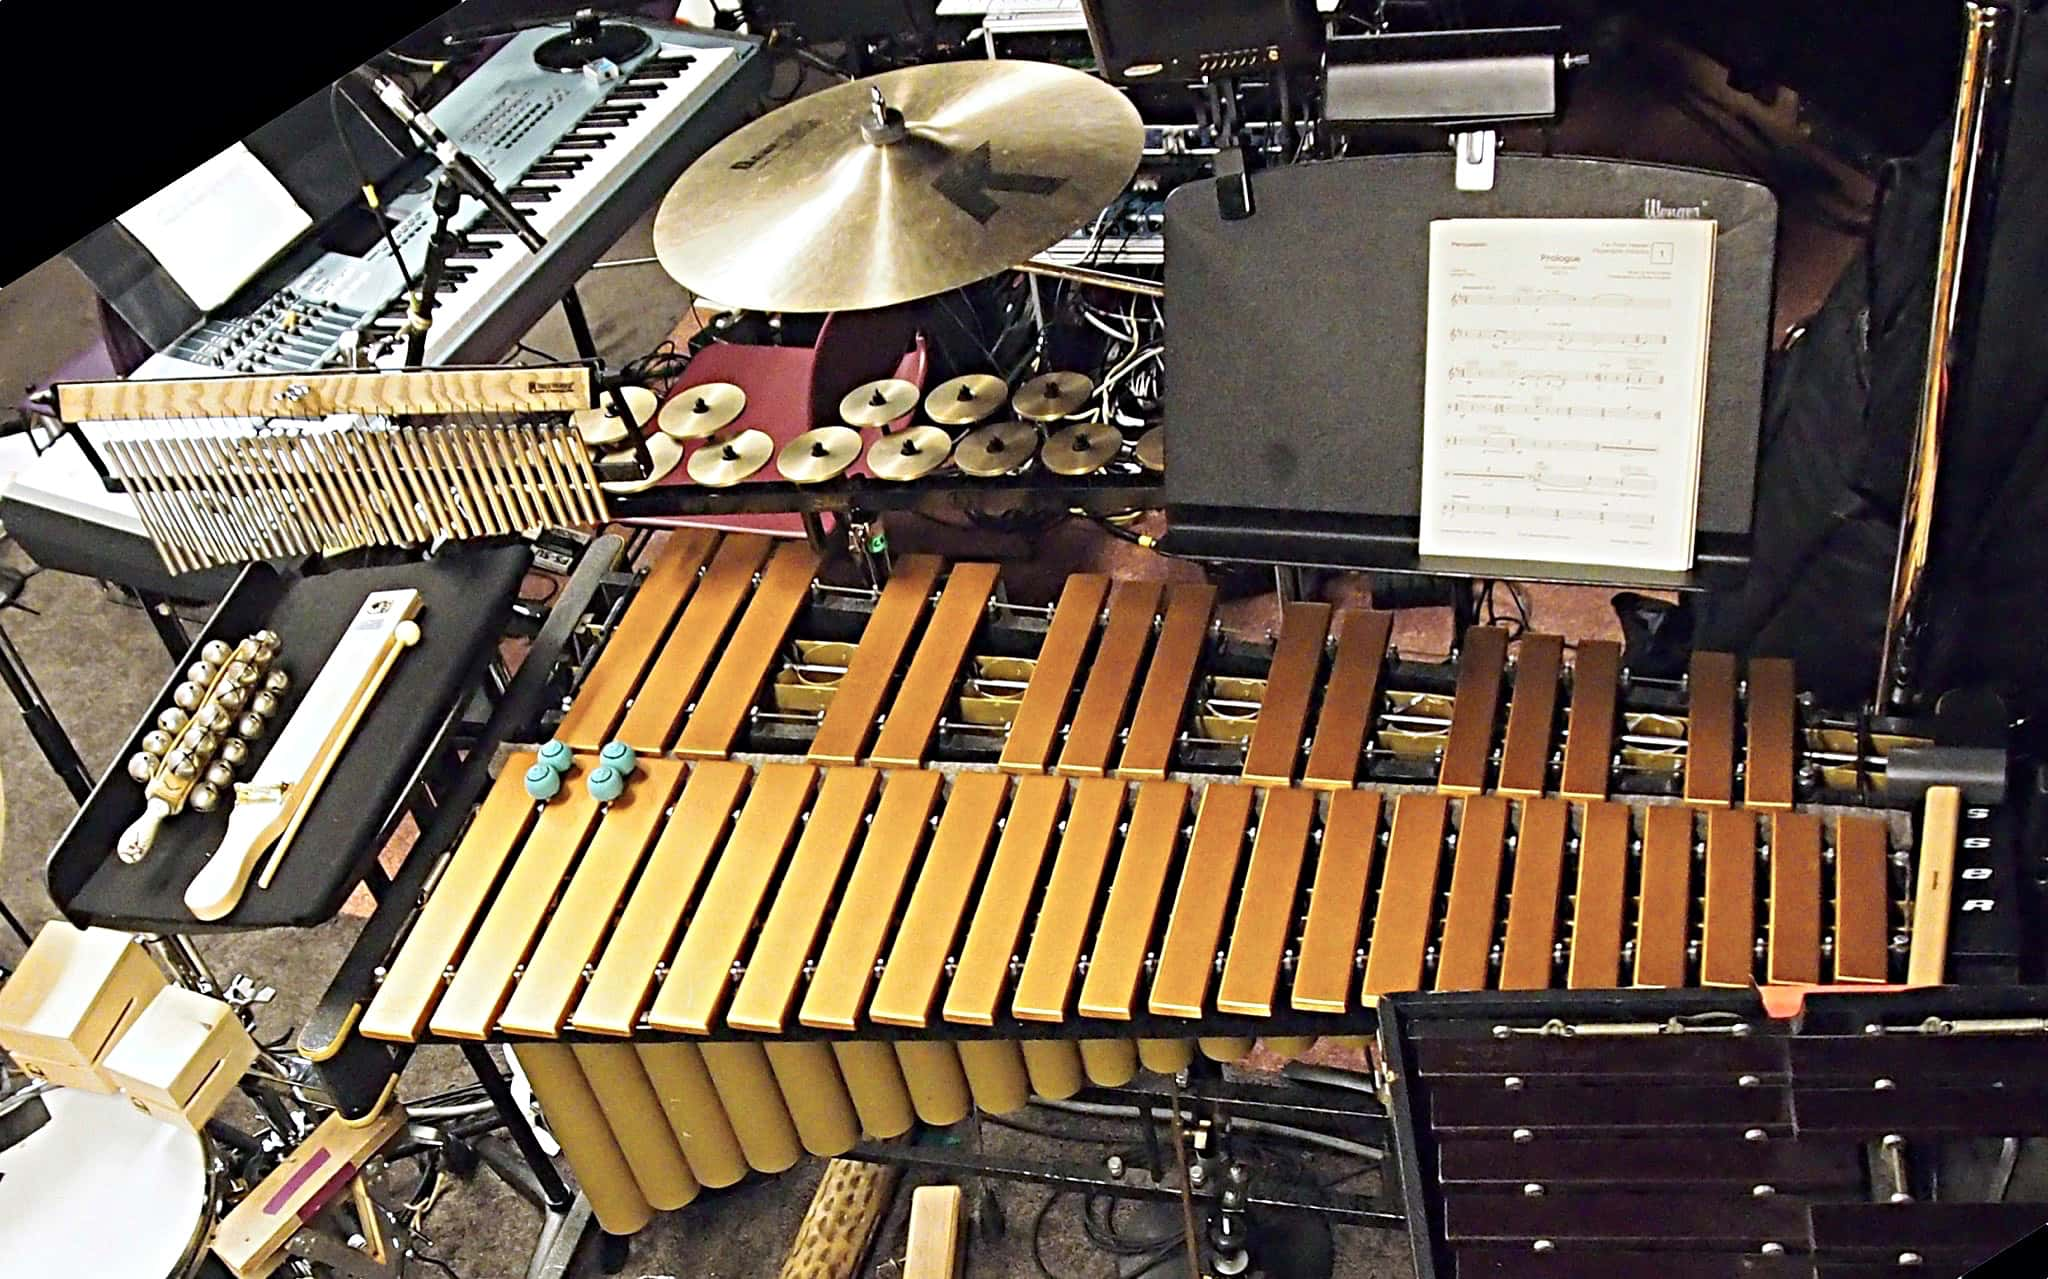 Charlie Descarfino's setup for the Off Broadway production of Far From Heaven at Playwrights Horizons in New York City.